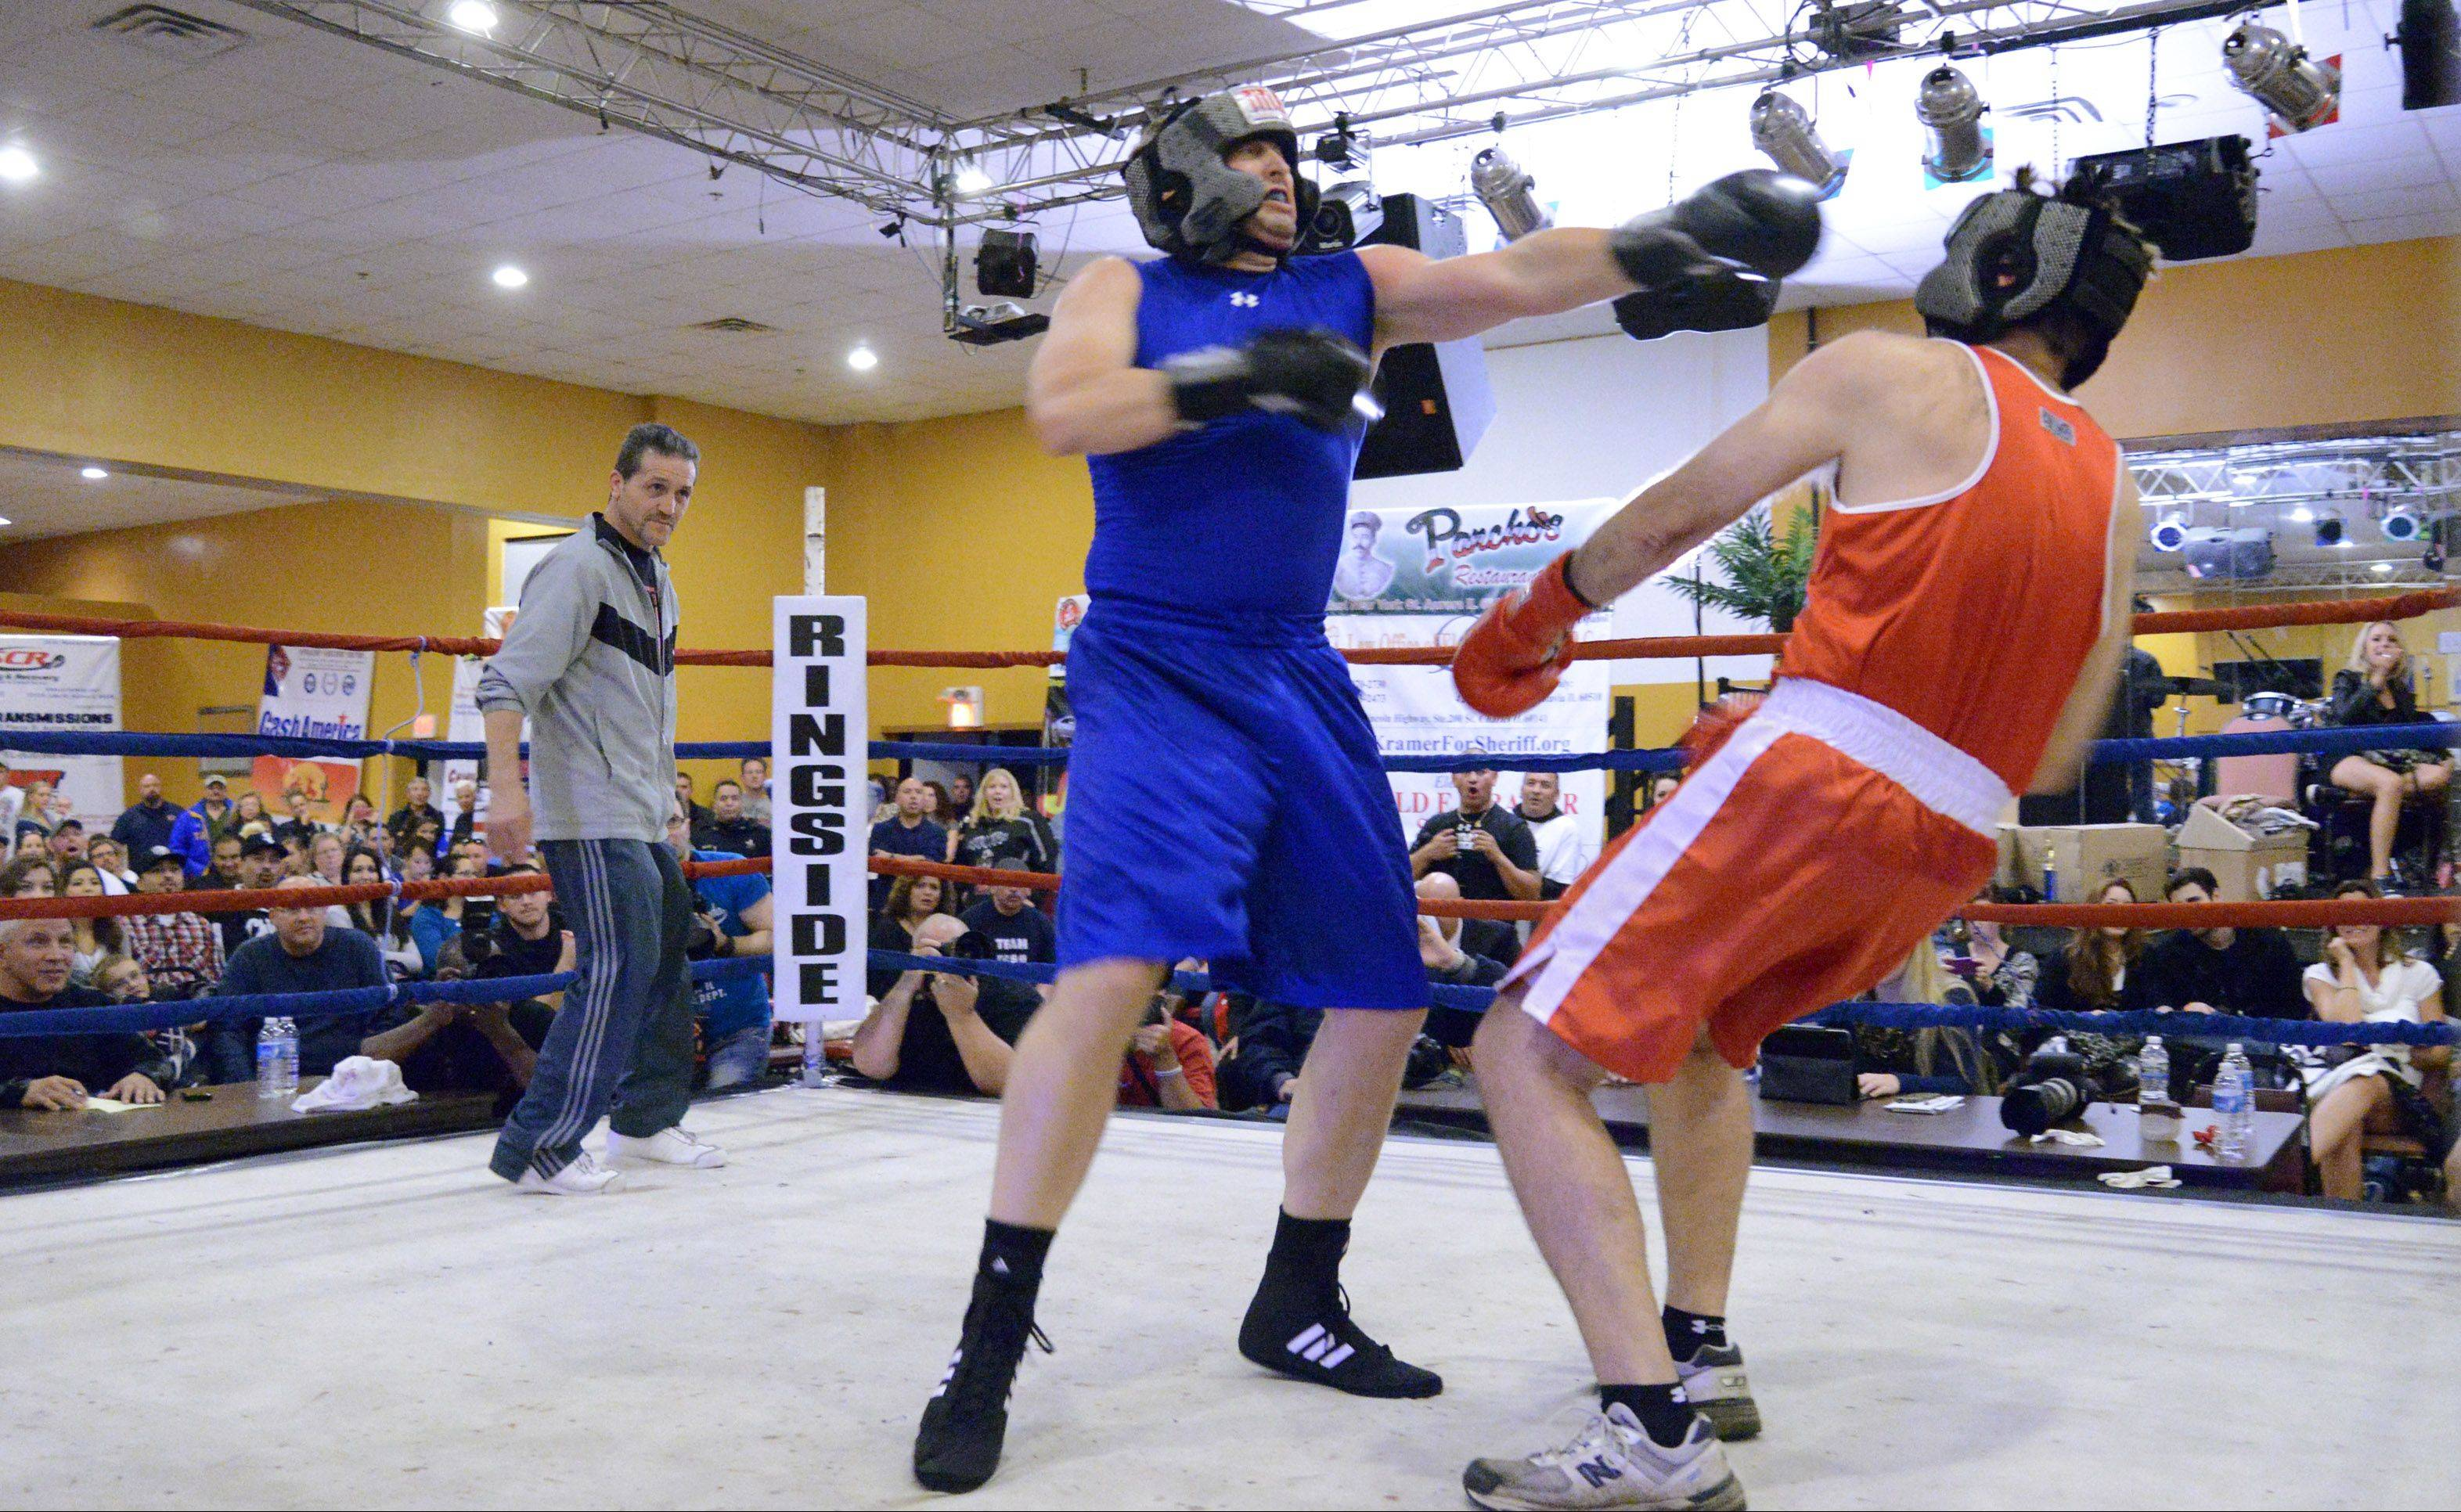 Cops, civic leaders punch it out for charity